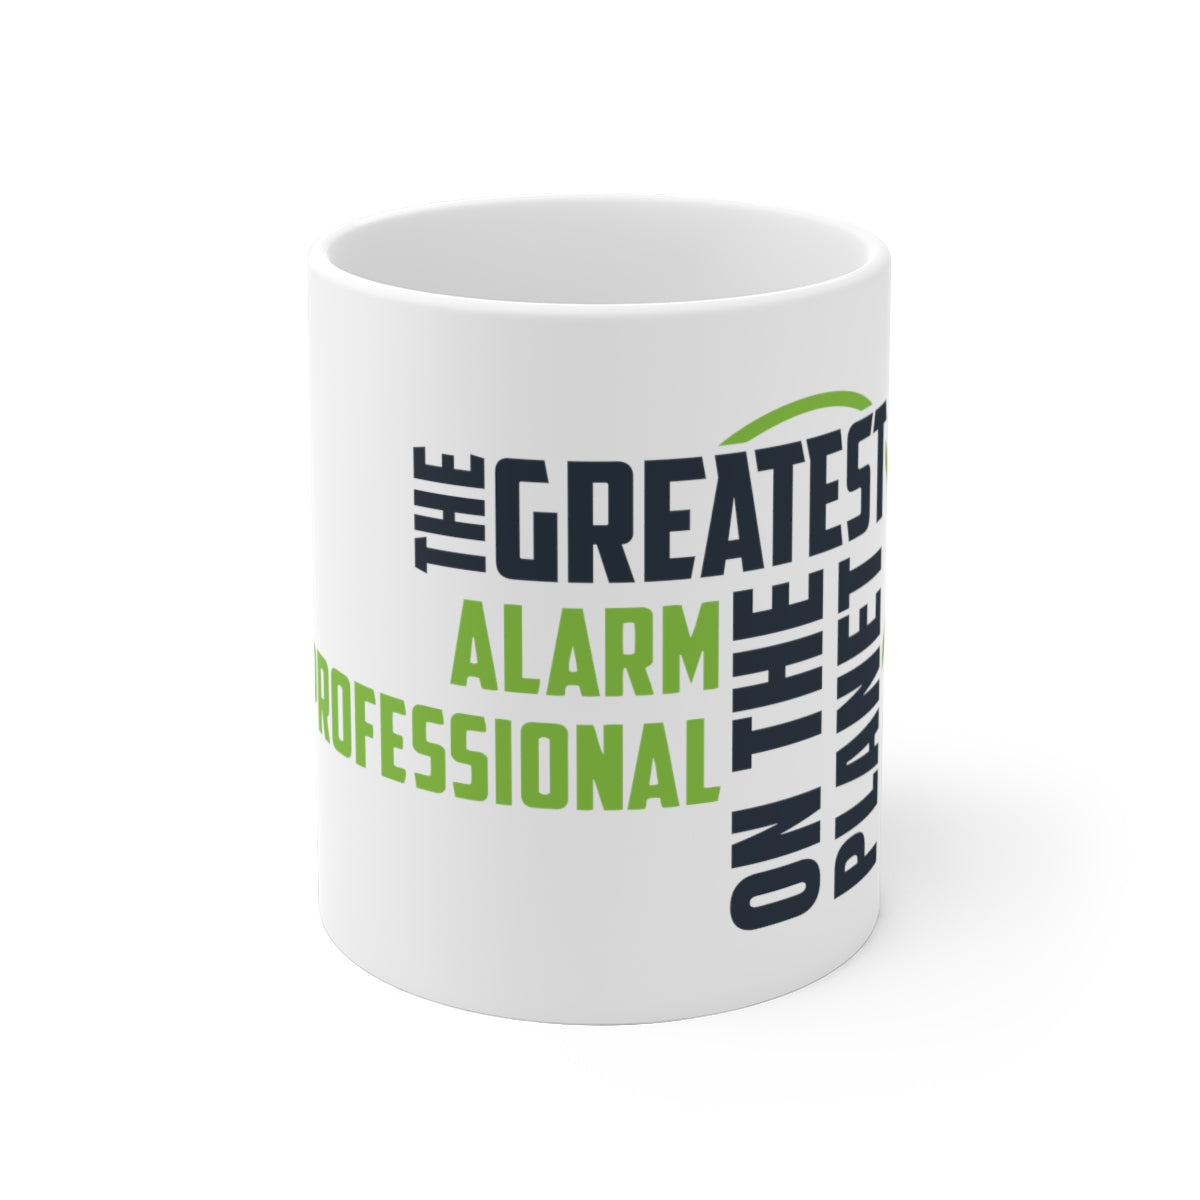 Coffee Mug - Alarm Professional